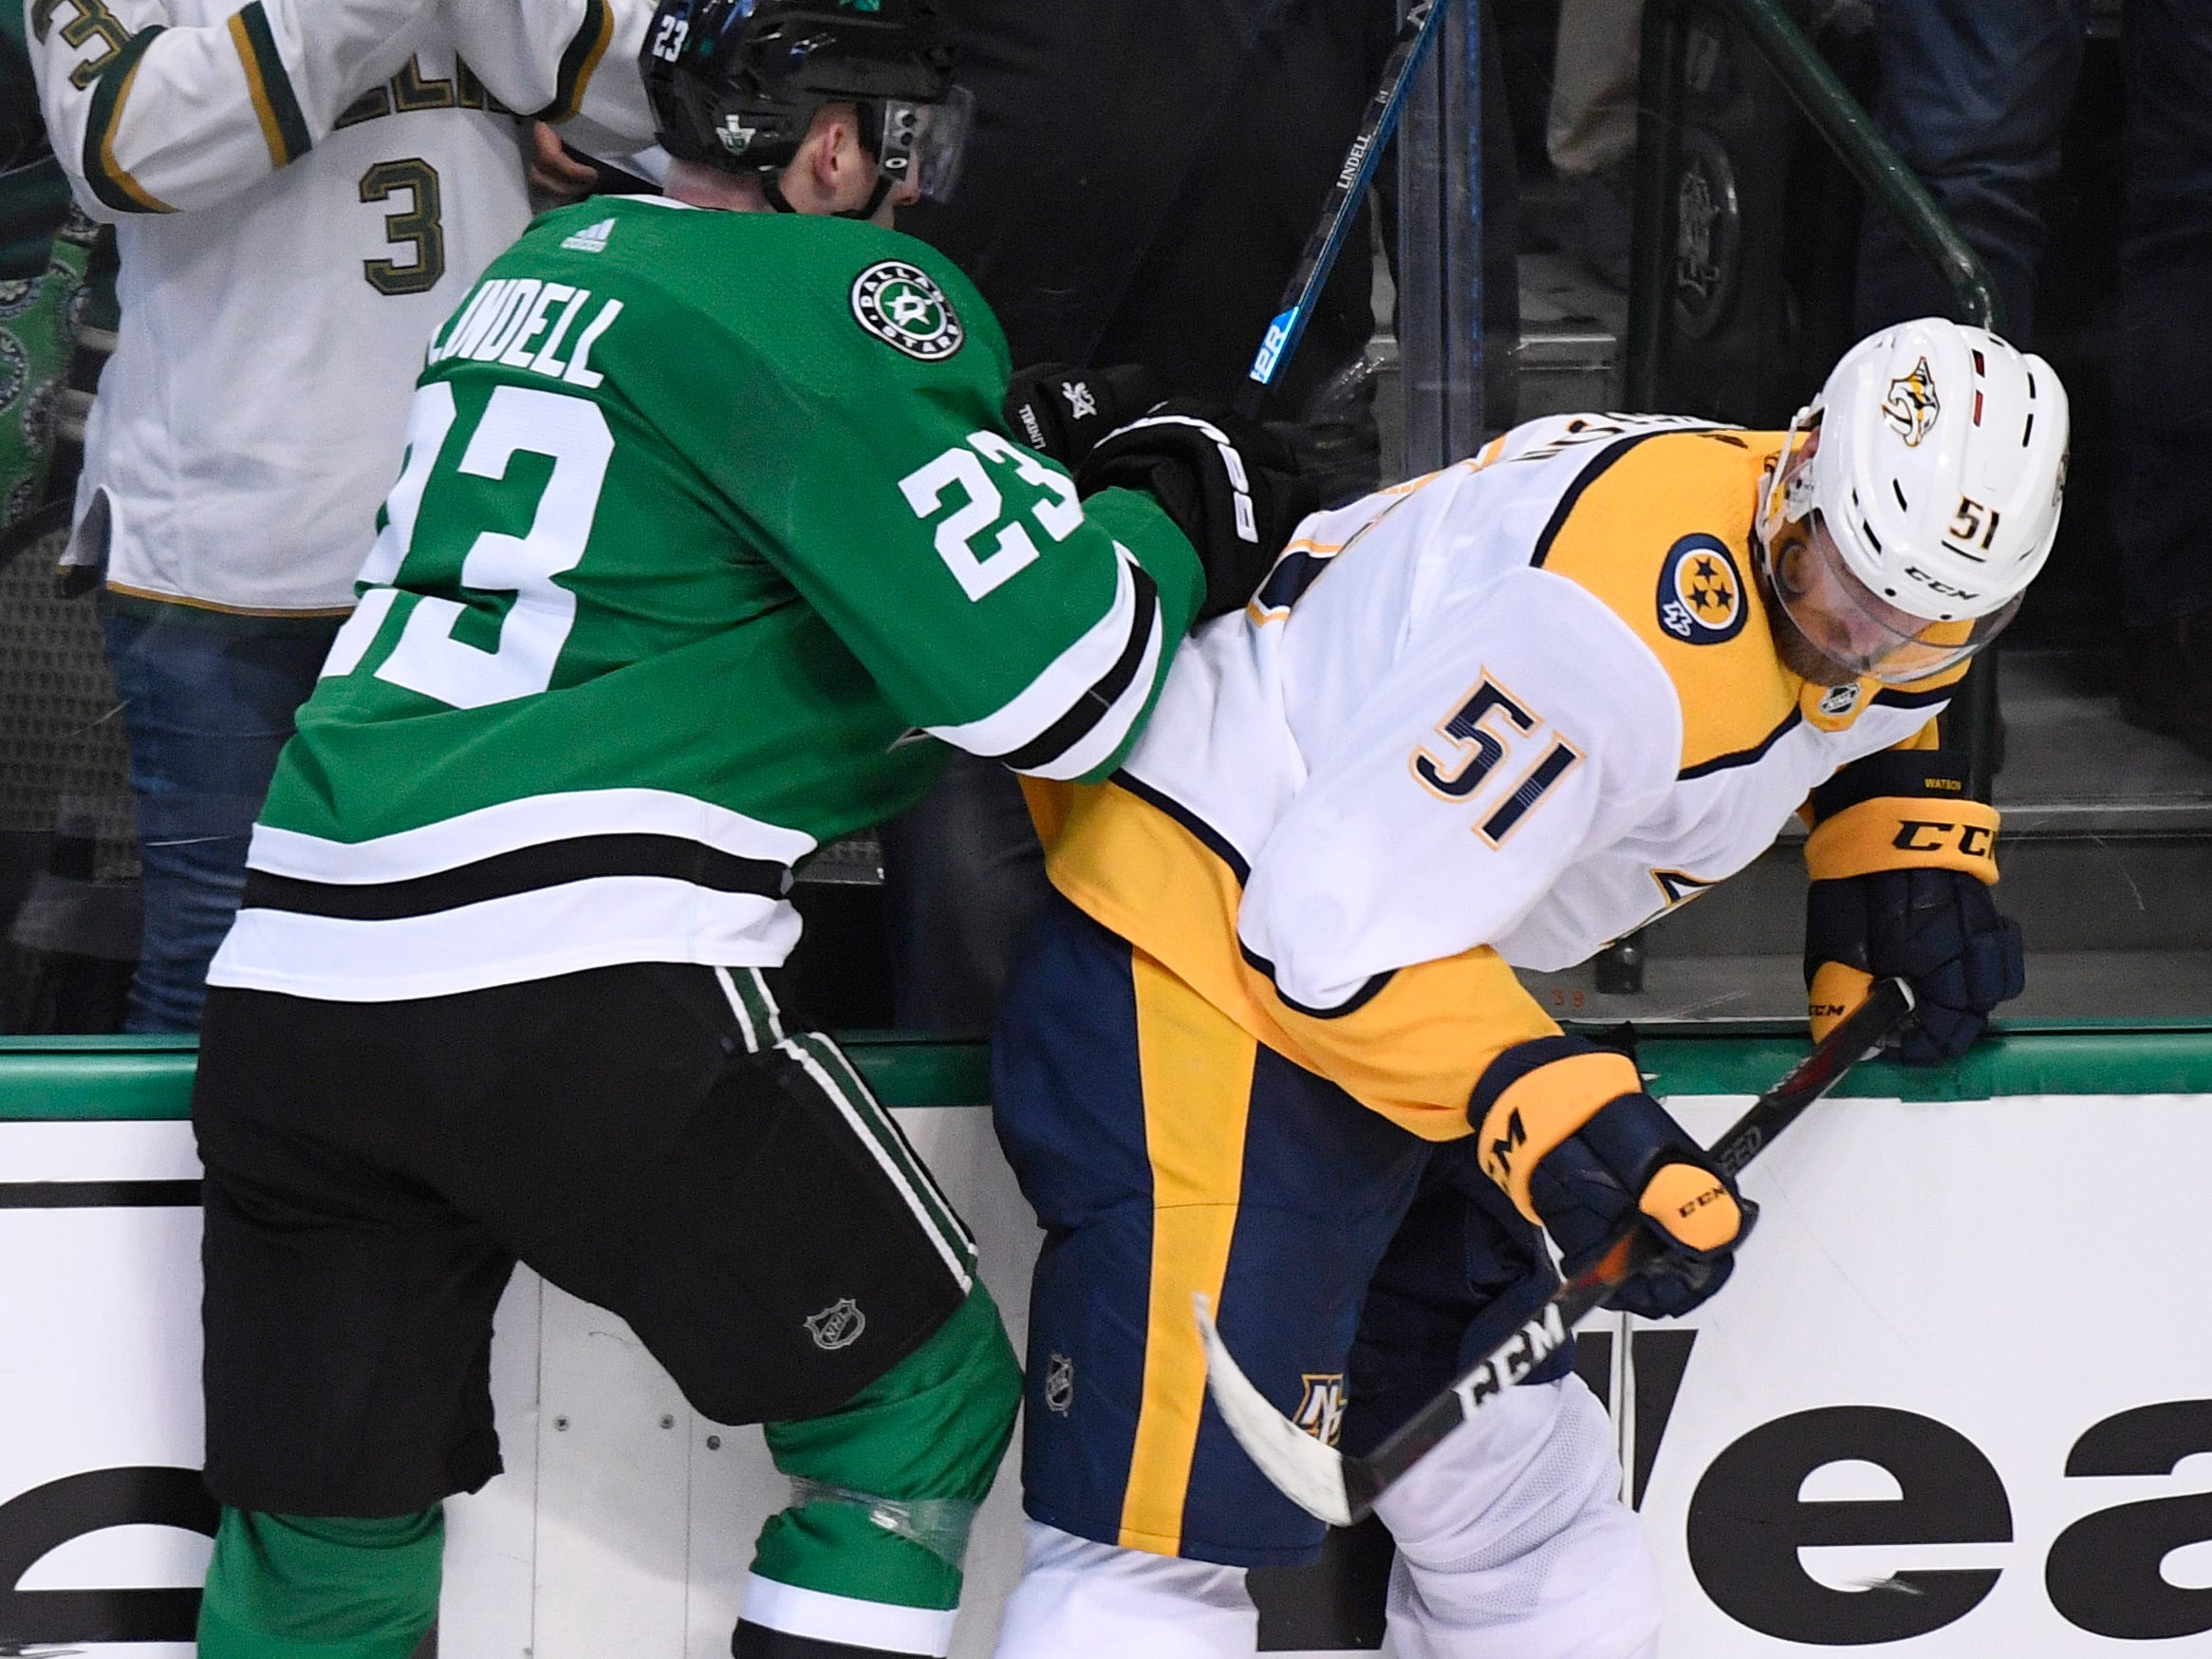 Dallas Stars defenseman Esa Lindell (23) and Nashville Predators left wing Austin Watson (51) battle along the boards during the second period of the divisional semifinal game at the American Airlines Center in Dallas, Texas, Monday, April 22, 2019.